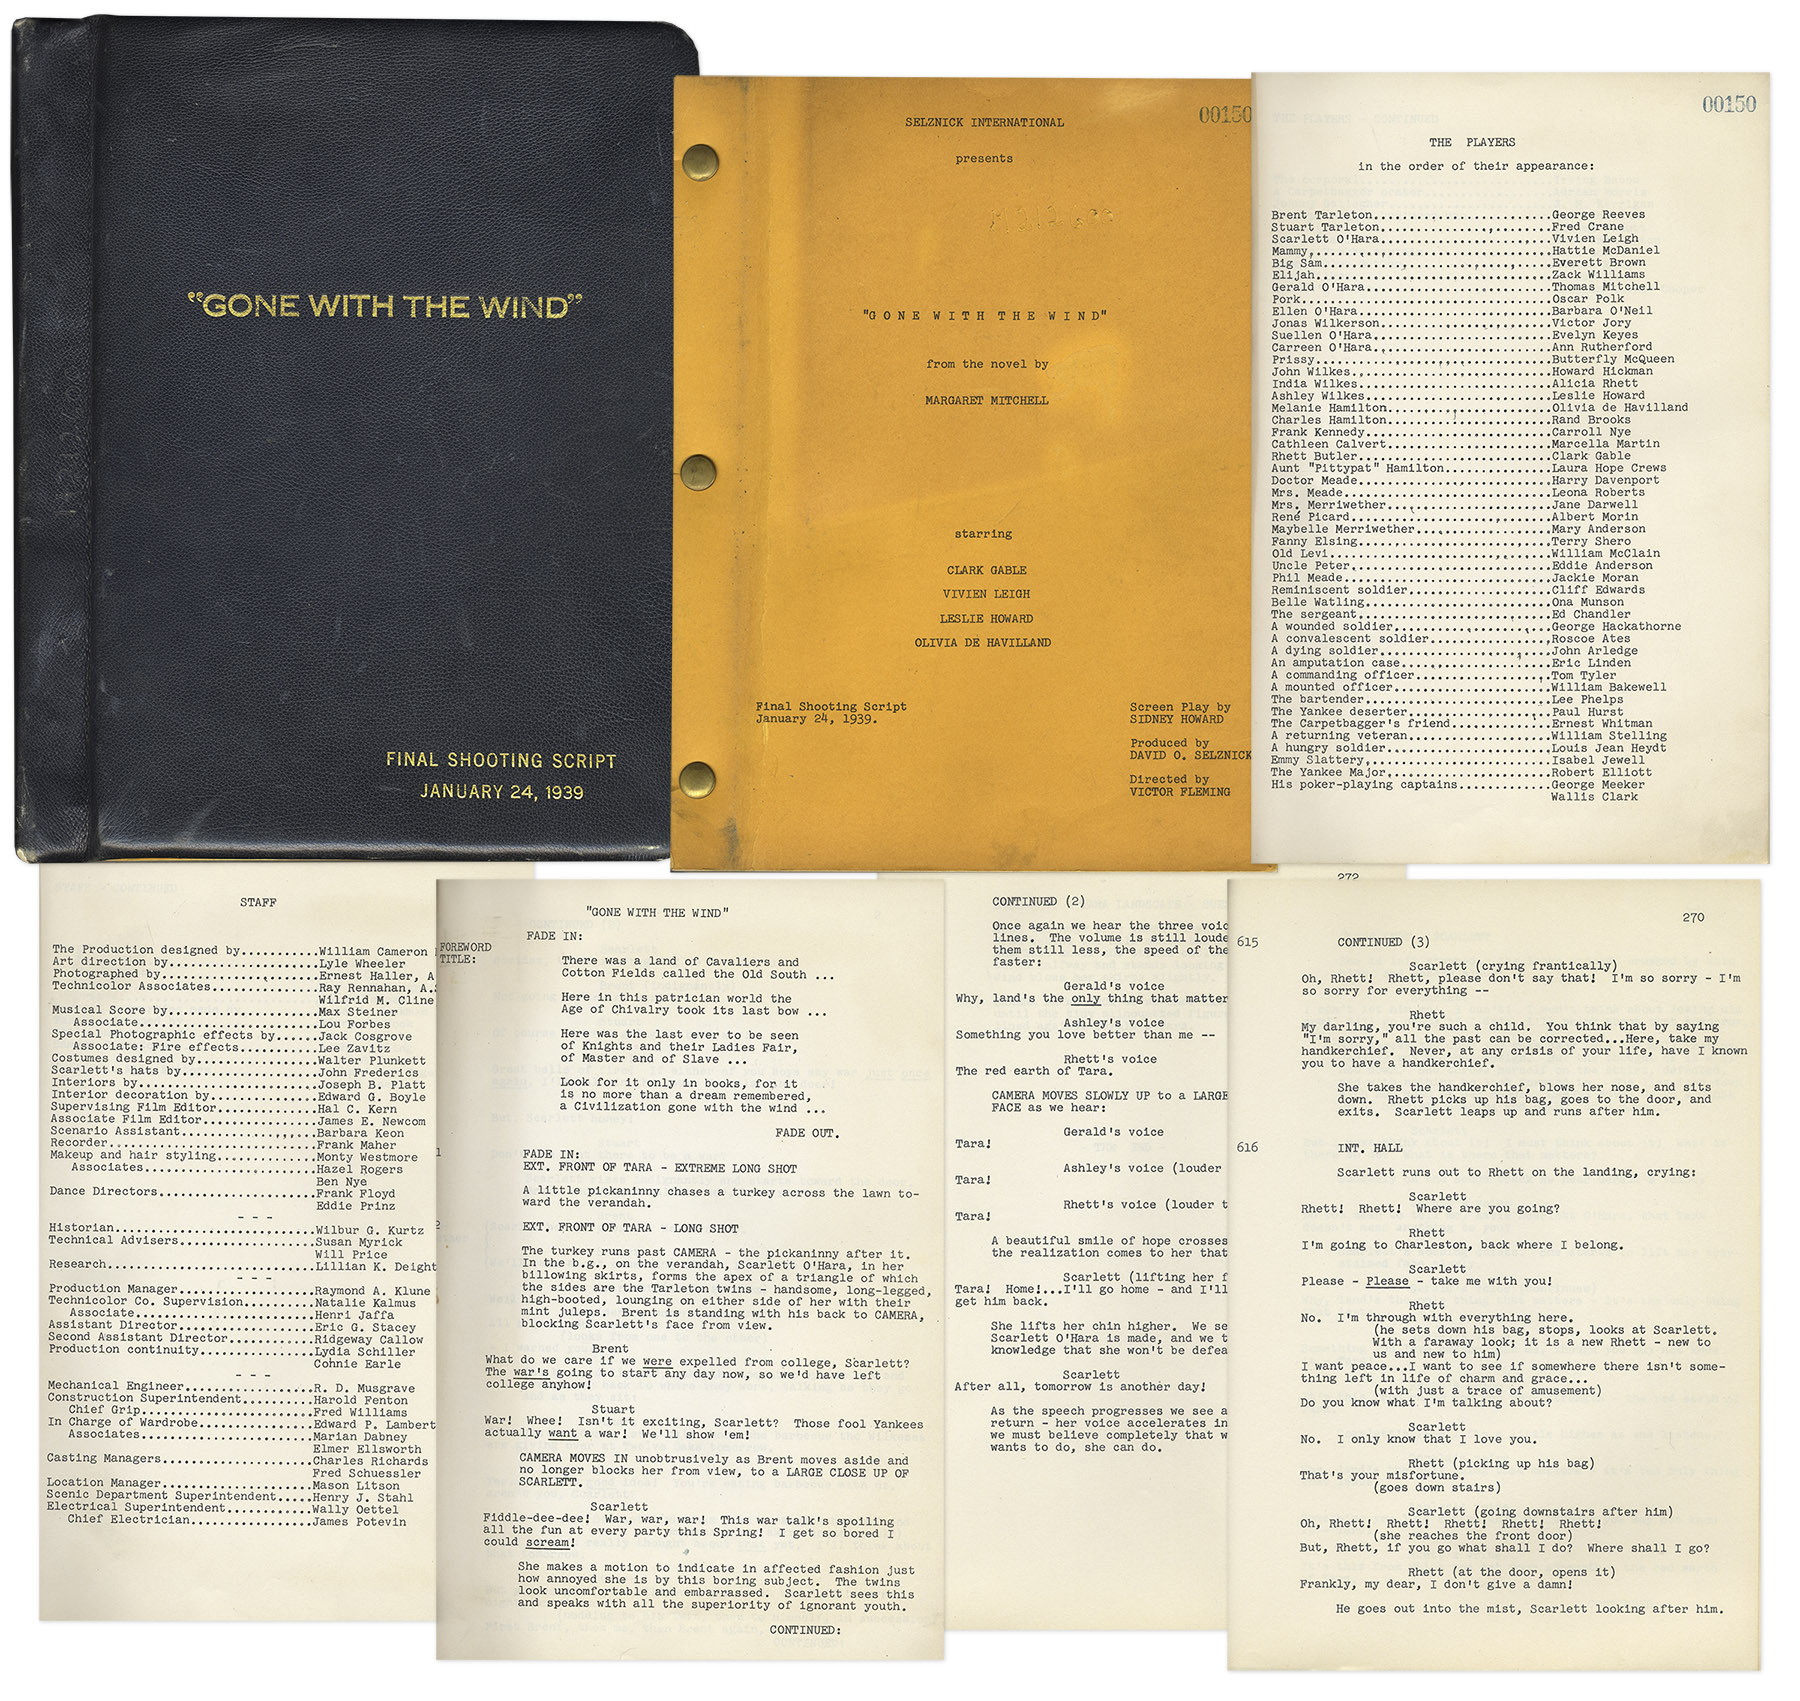 Auction Your Gone With The Wind Script At Nate D Sanders Auctions